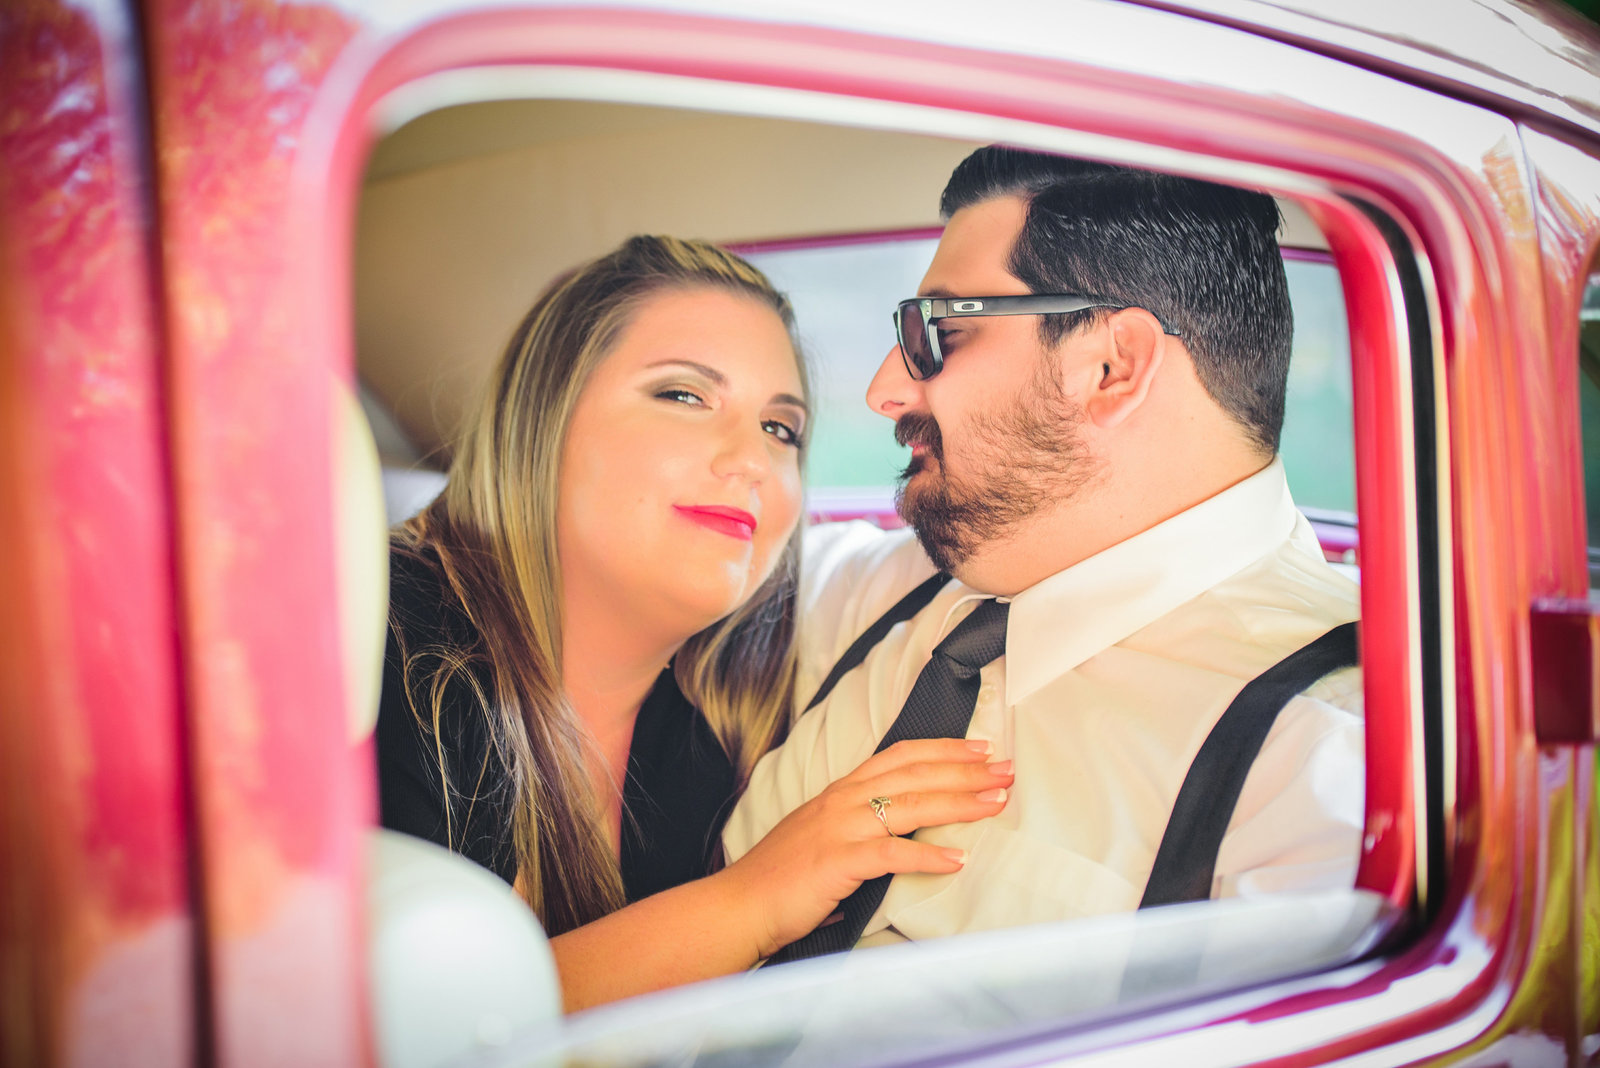 Retro_Pinup_Car_engagement_session_Nj027